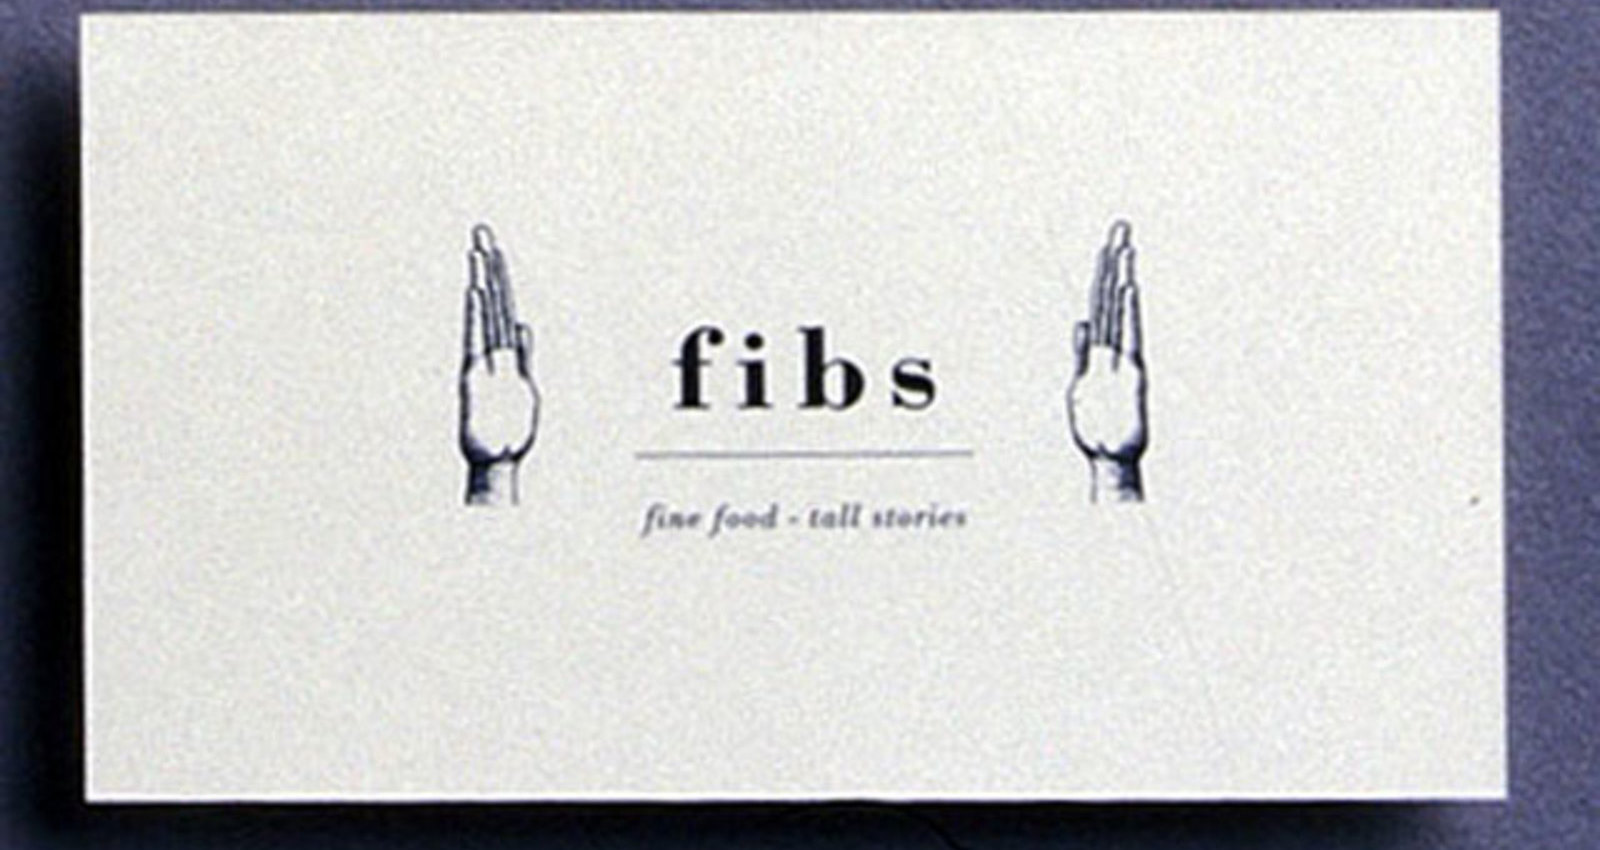 Fibs. Fine Food-Tall Stories.